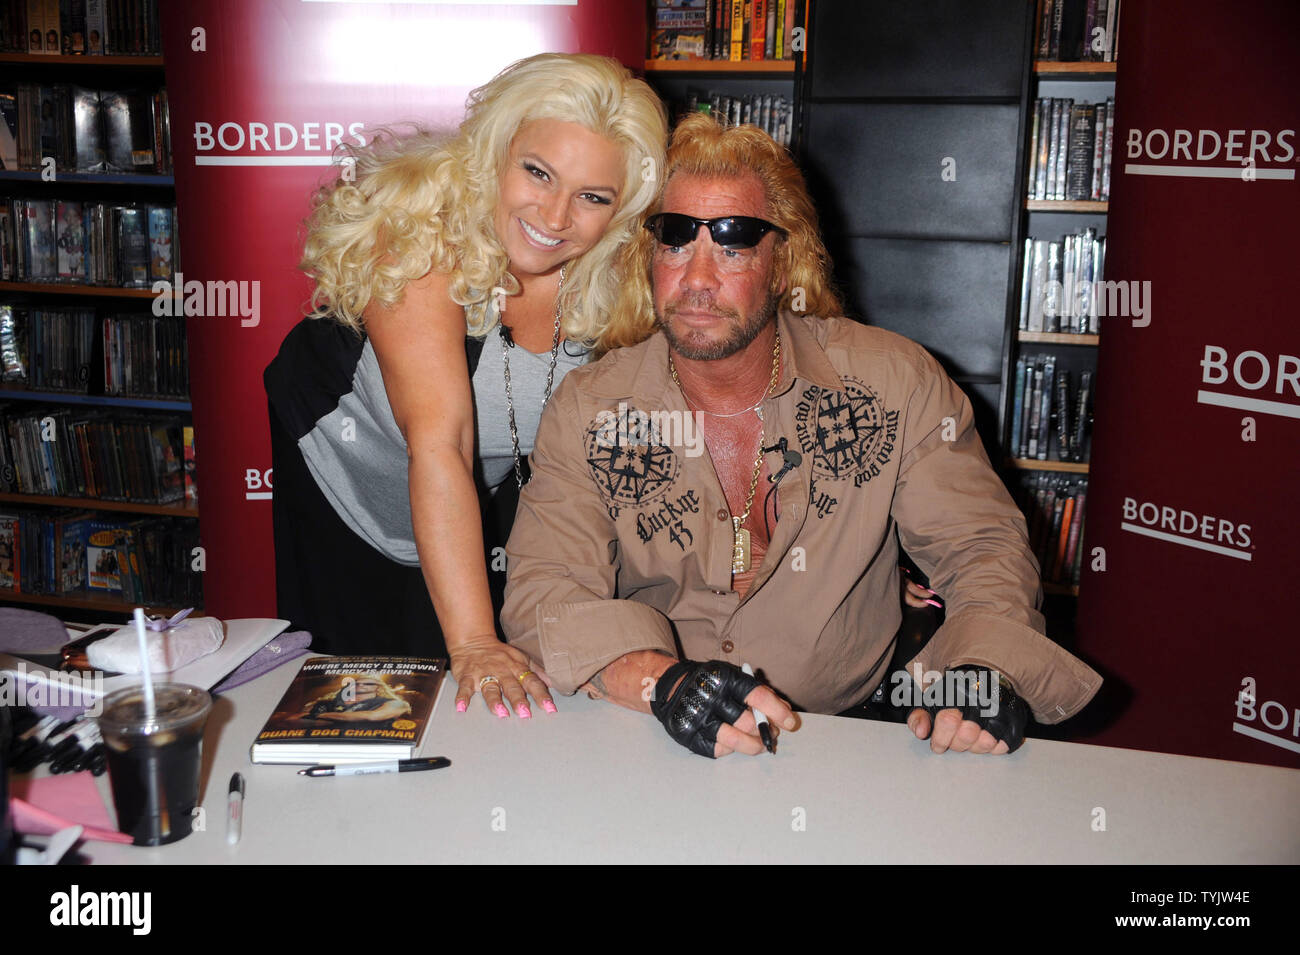 Beth Chapman Stock Photos & Beth Chapman Stock Images - Alamy